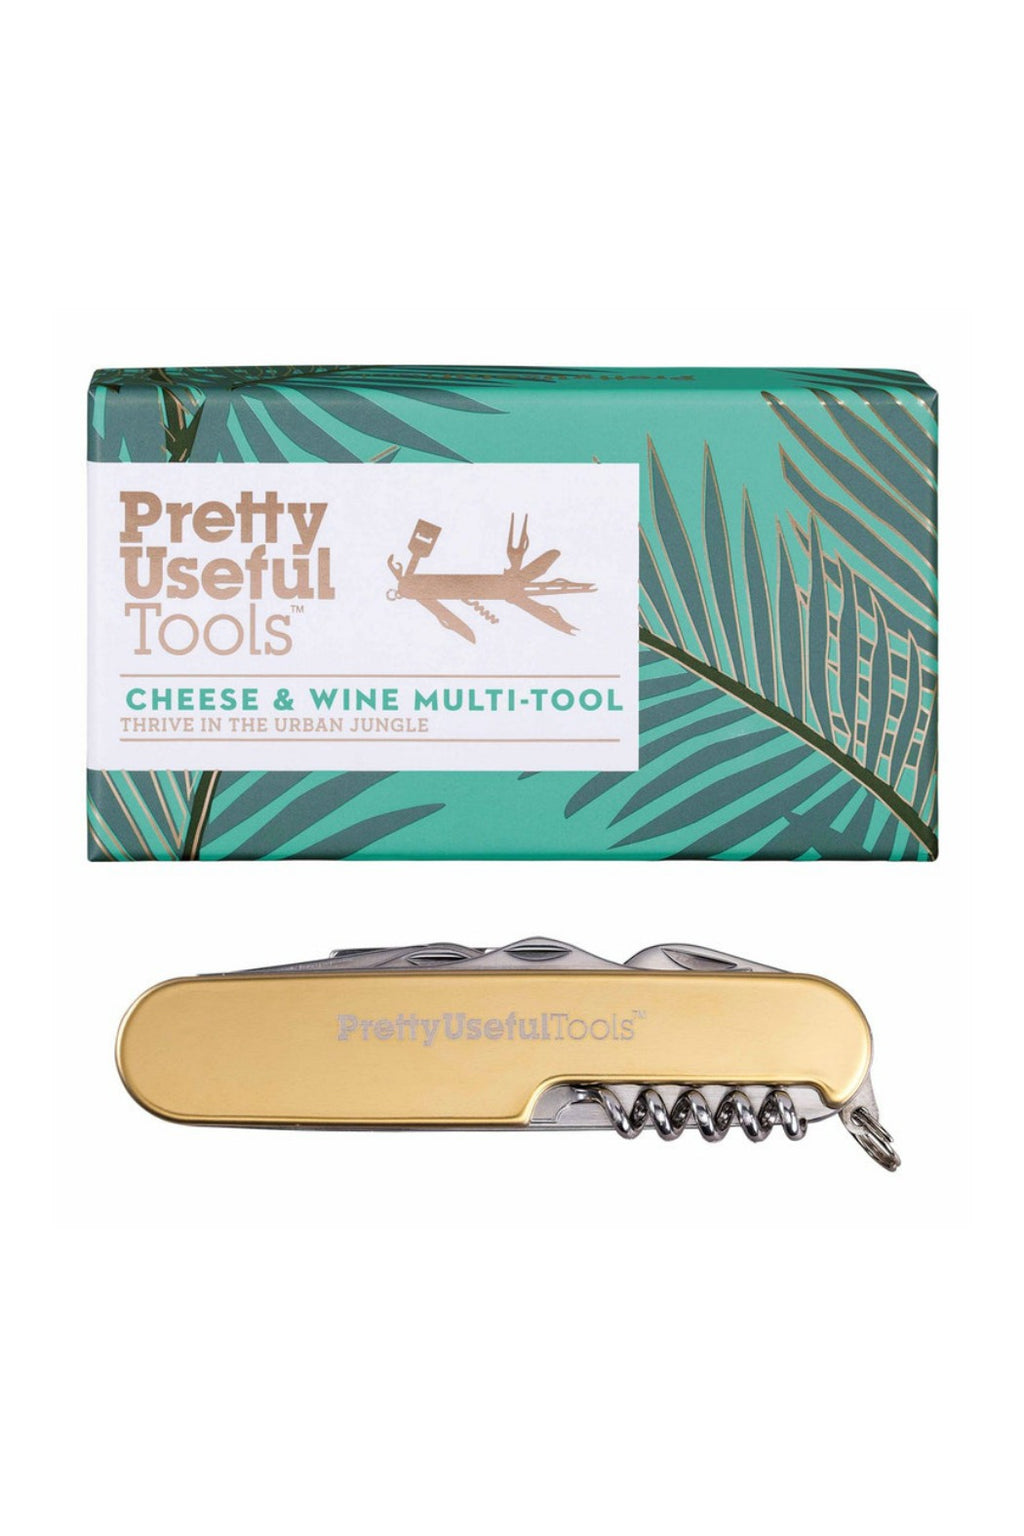 Pretty Useful Tools Cheese and Wine Multi-Tool